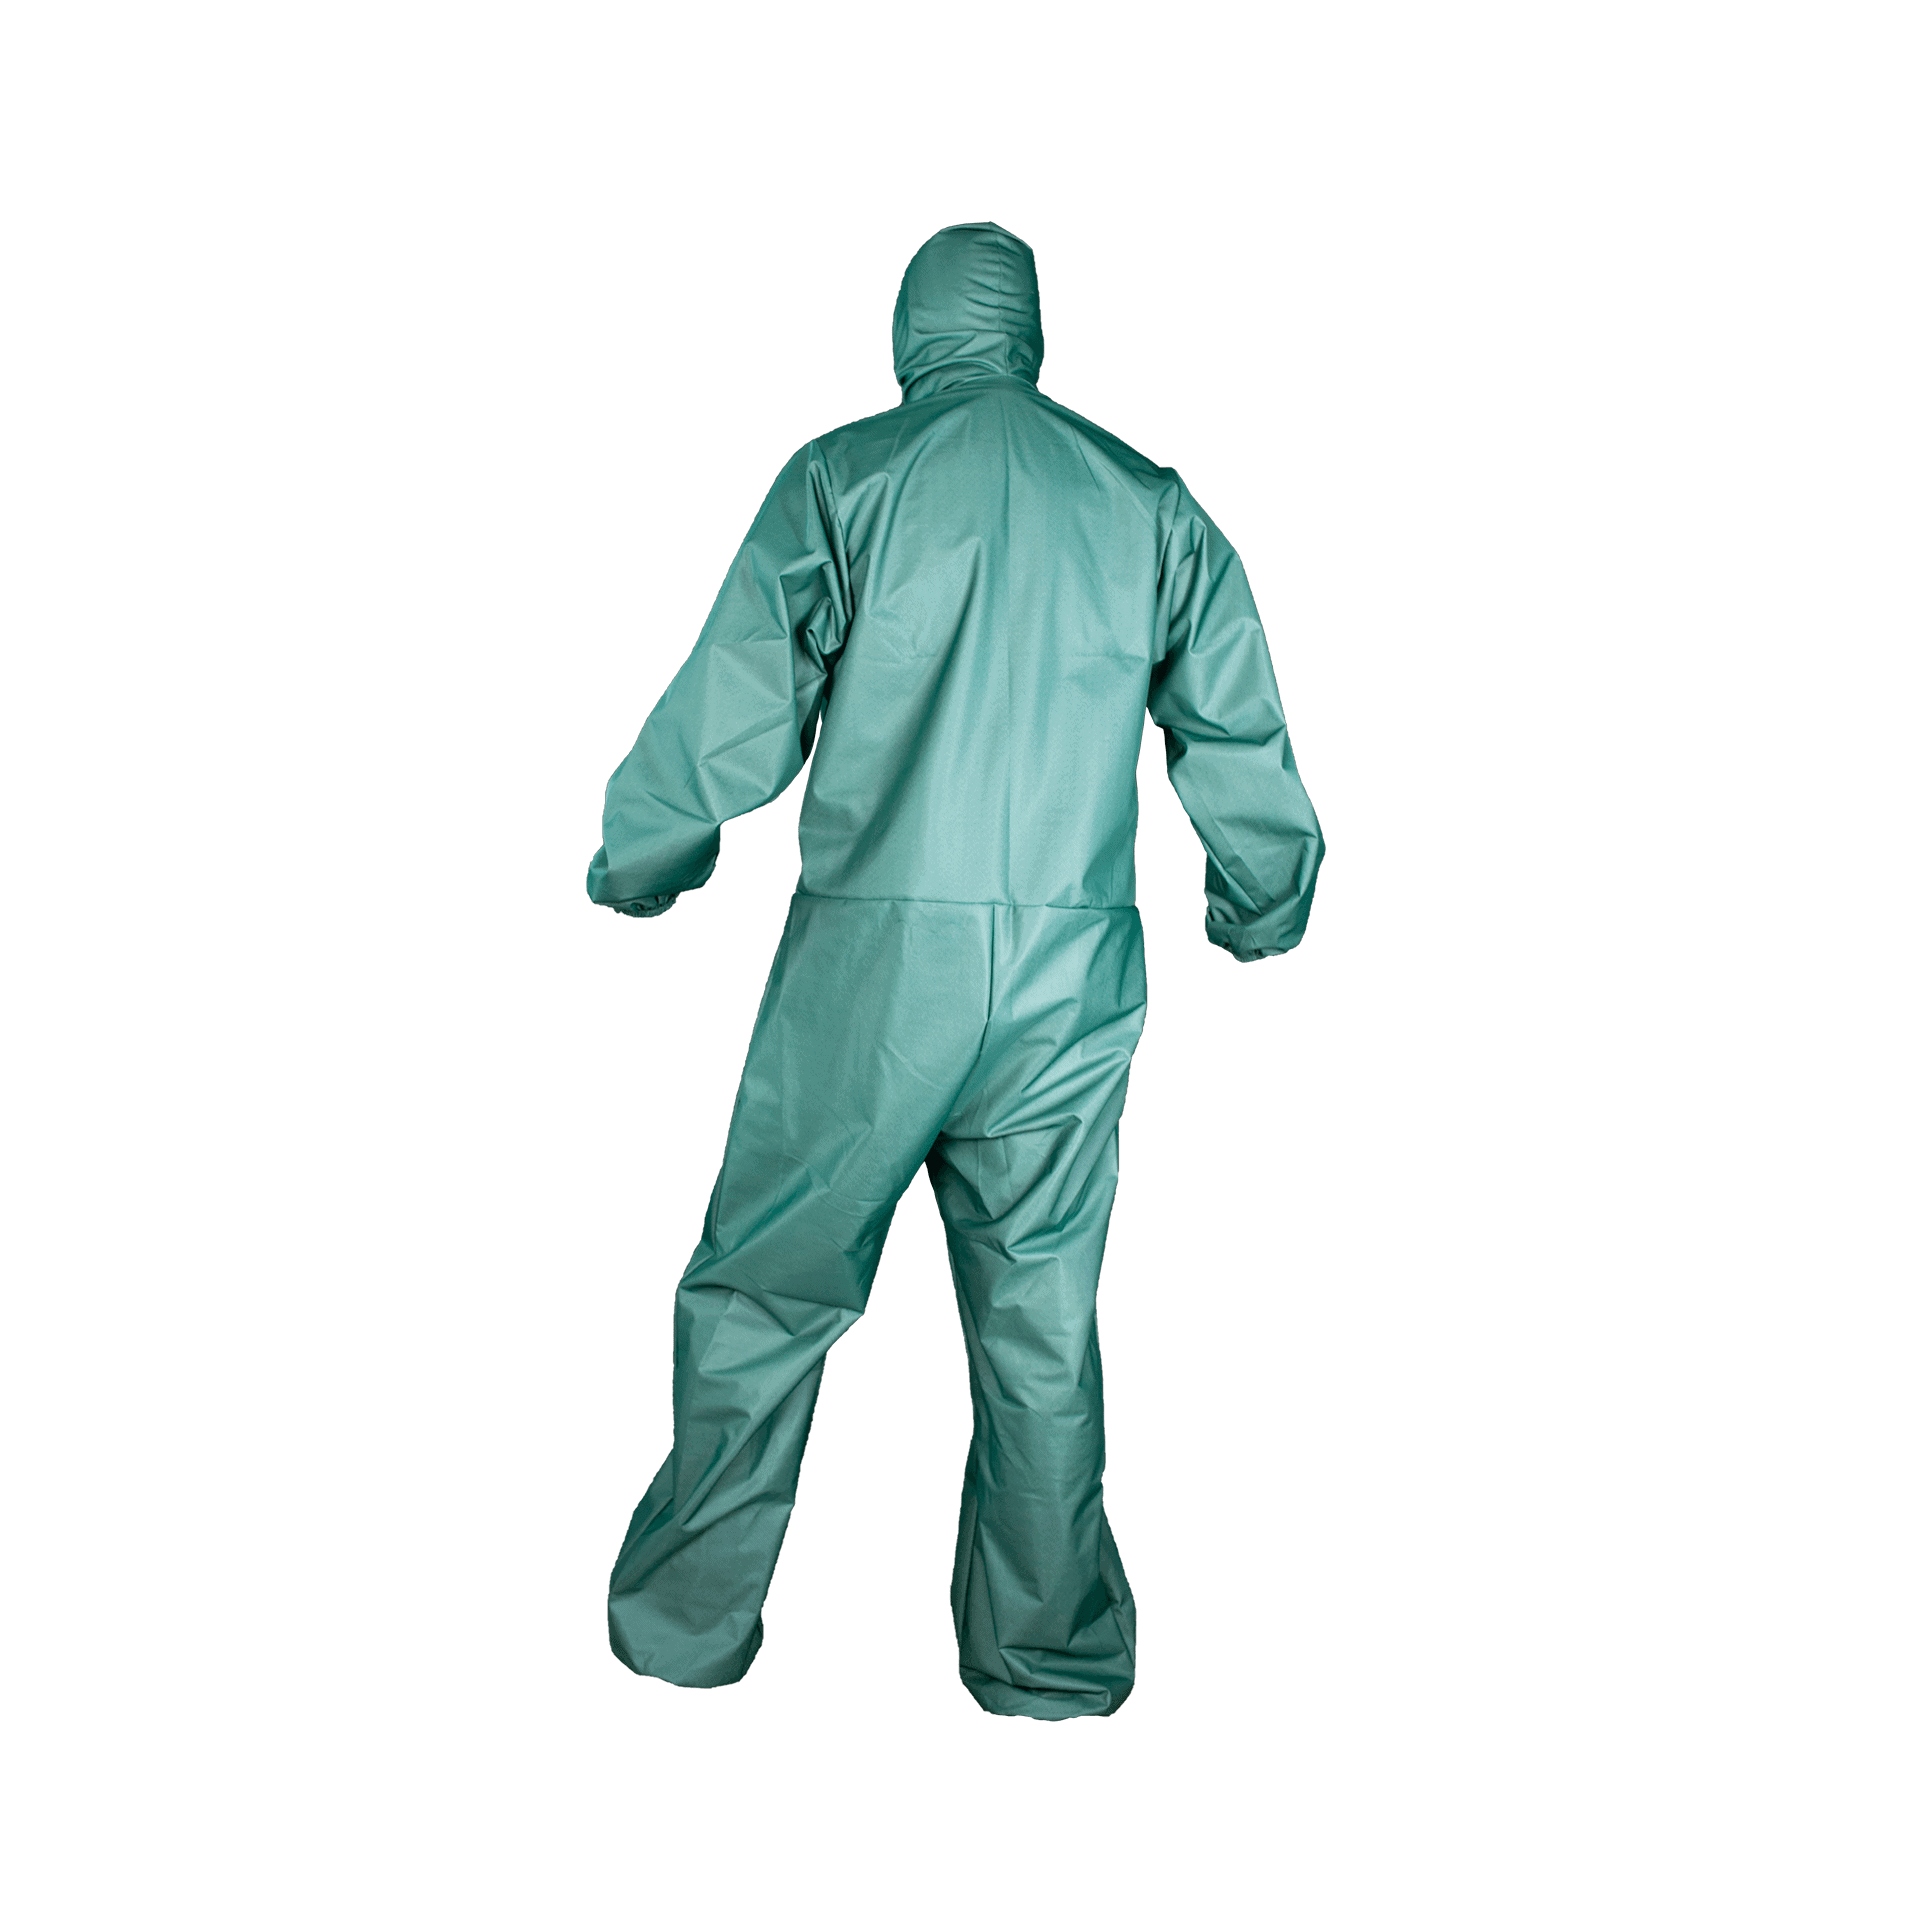 AAMI Level 3 Isolation PPE Coverall